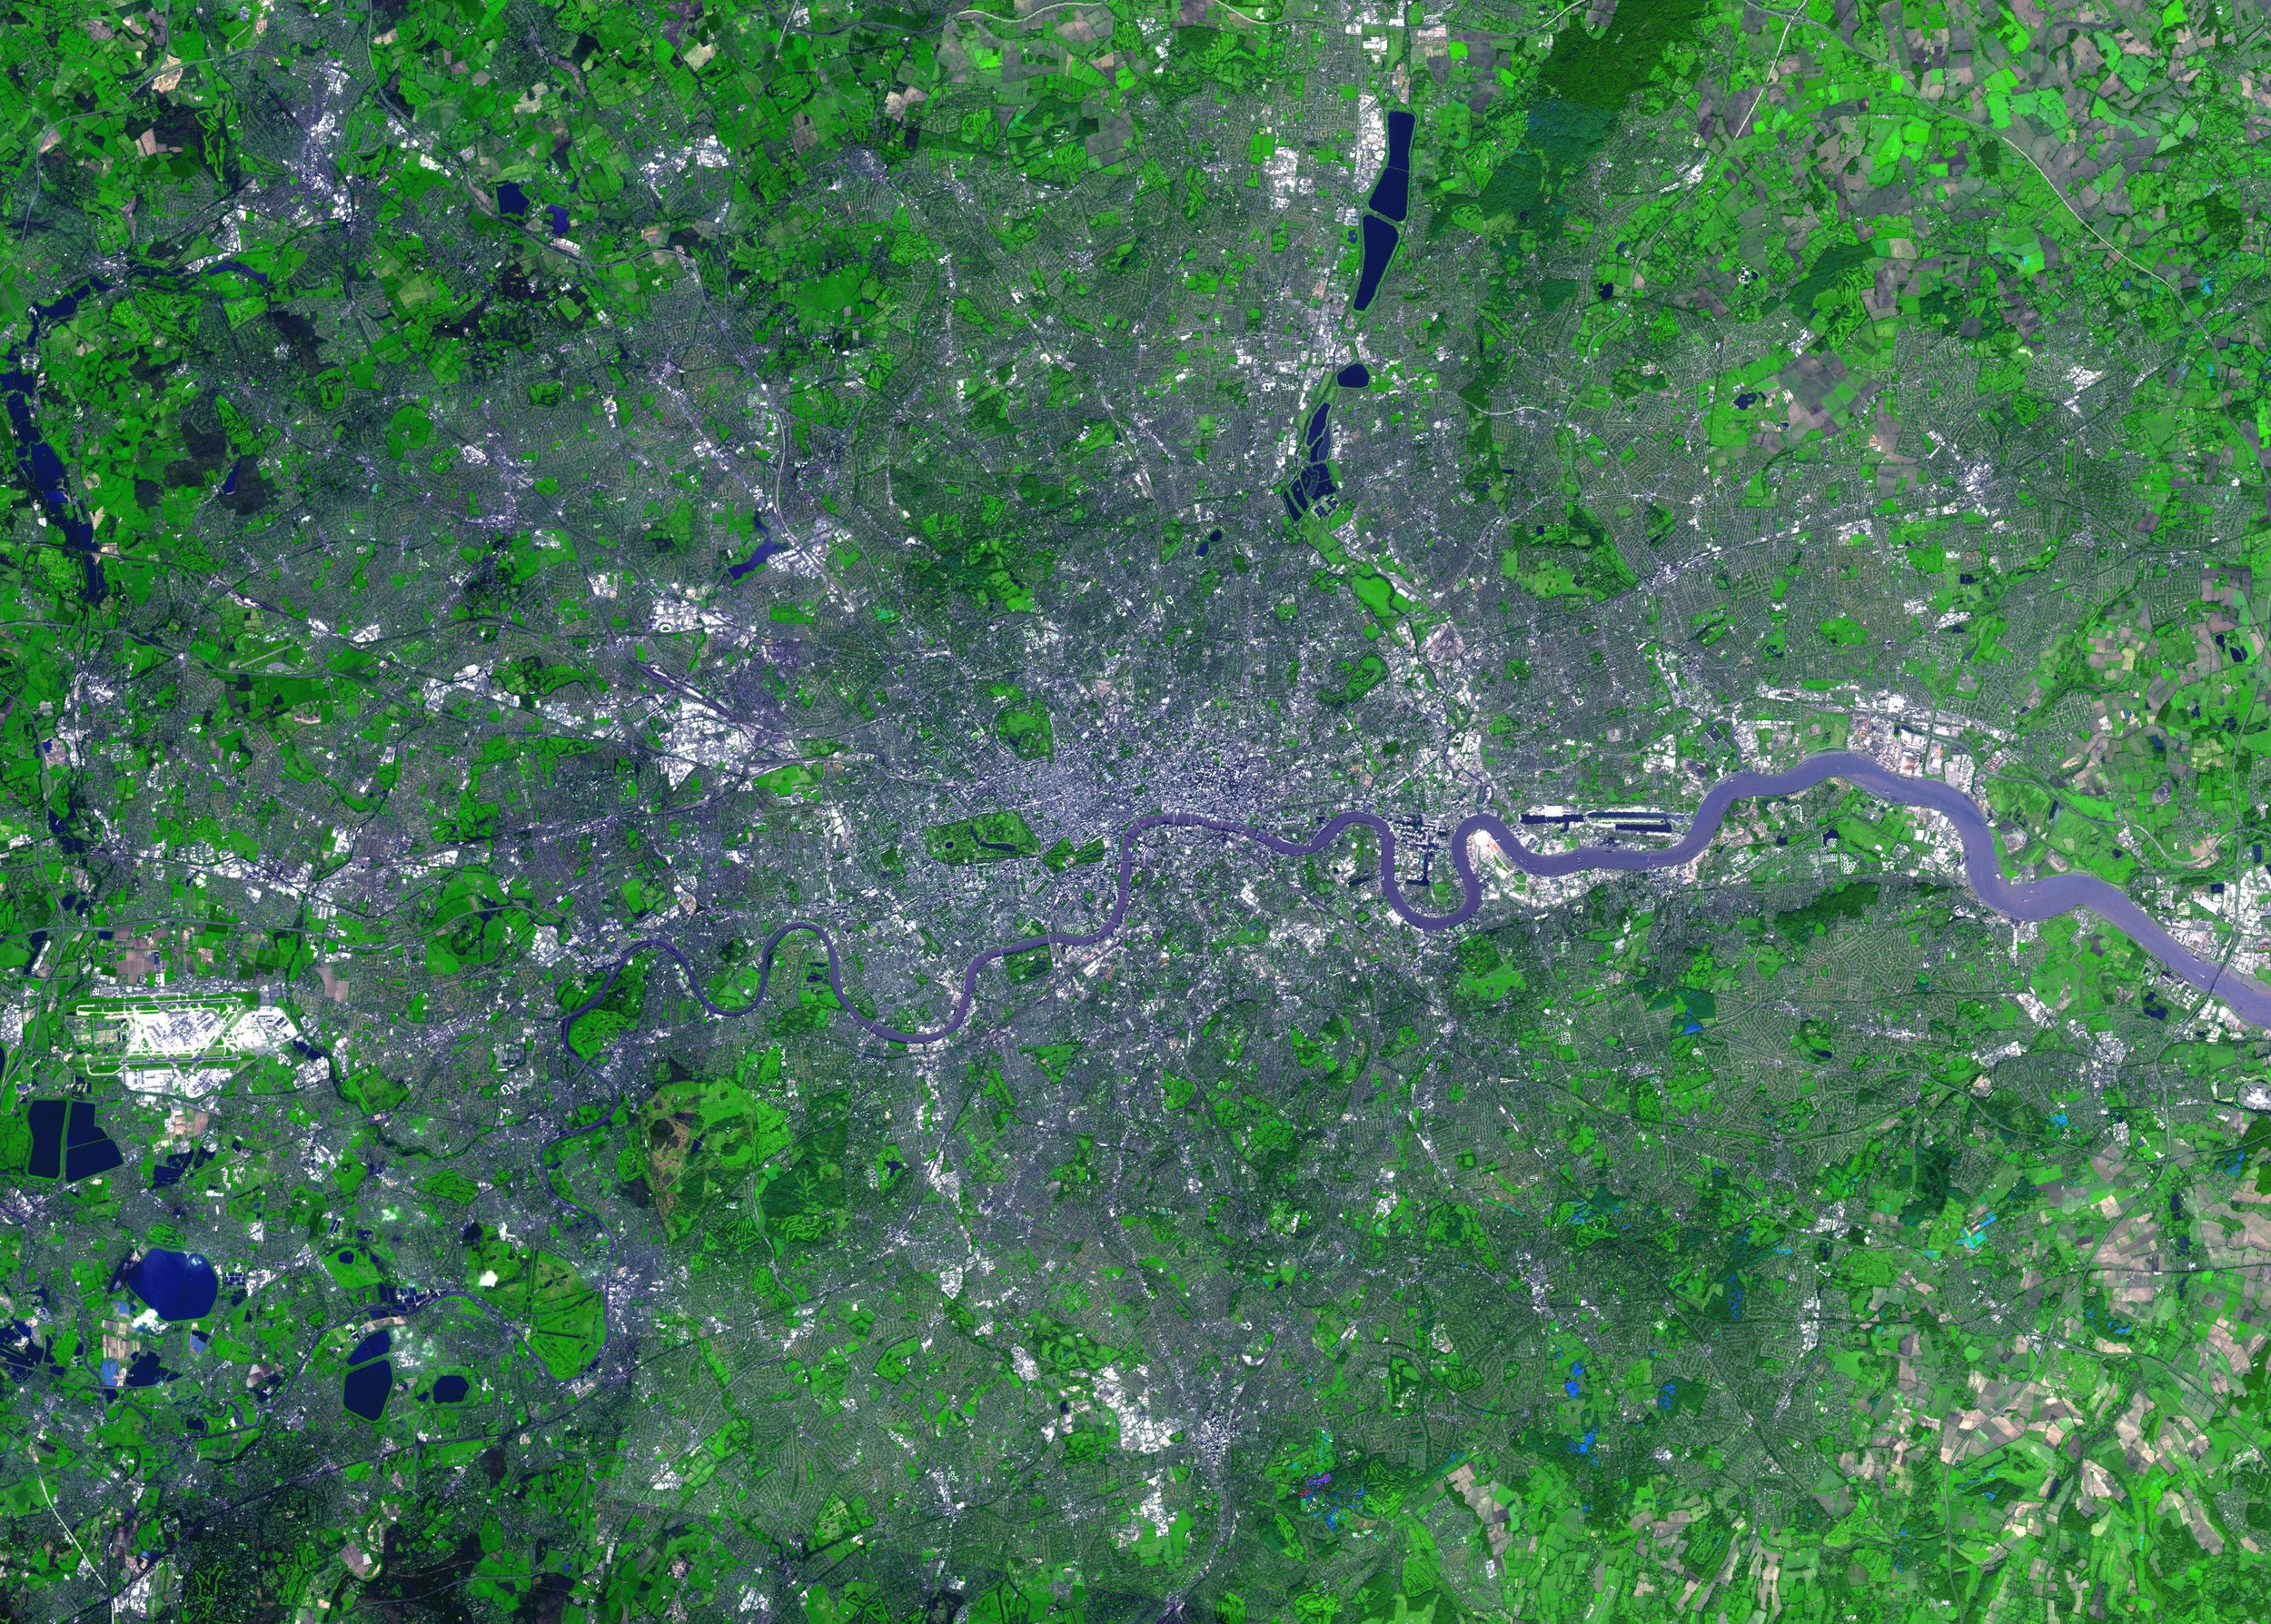 London - Slightly wider than tall (Heathrow is the big white thing on the left of the photo)